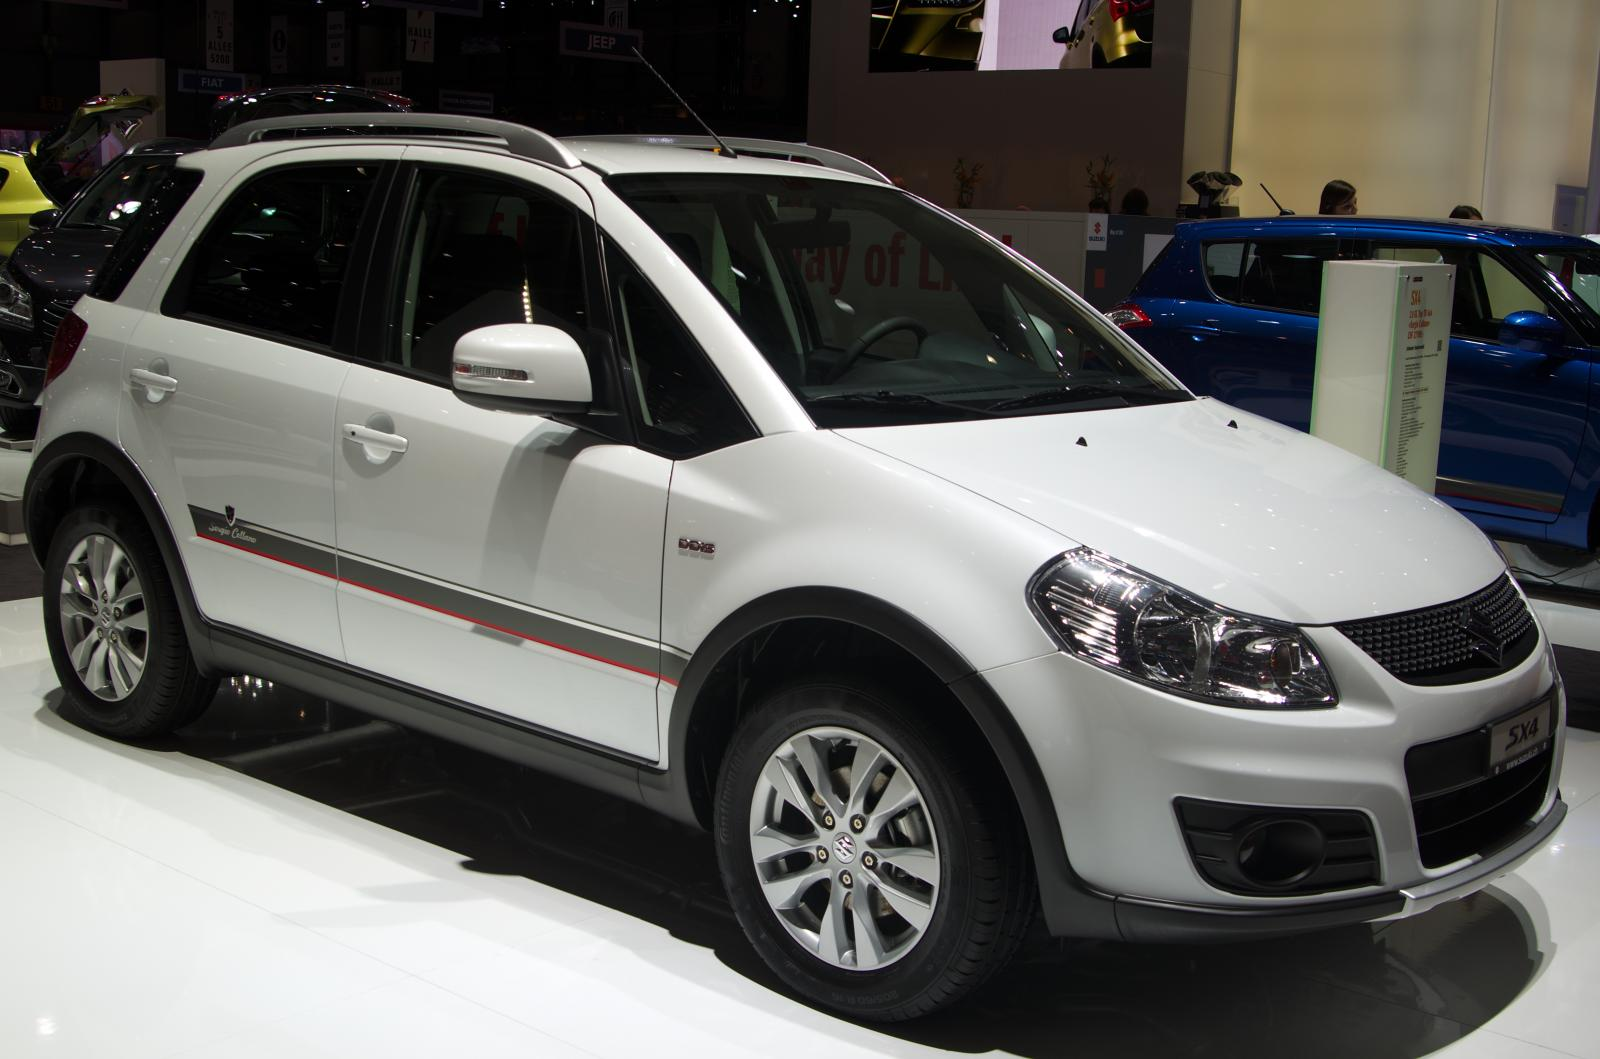 2013 Suzuki Sx4 - Information And Photos